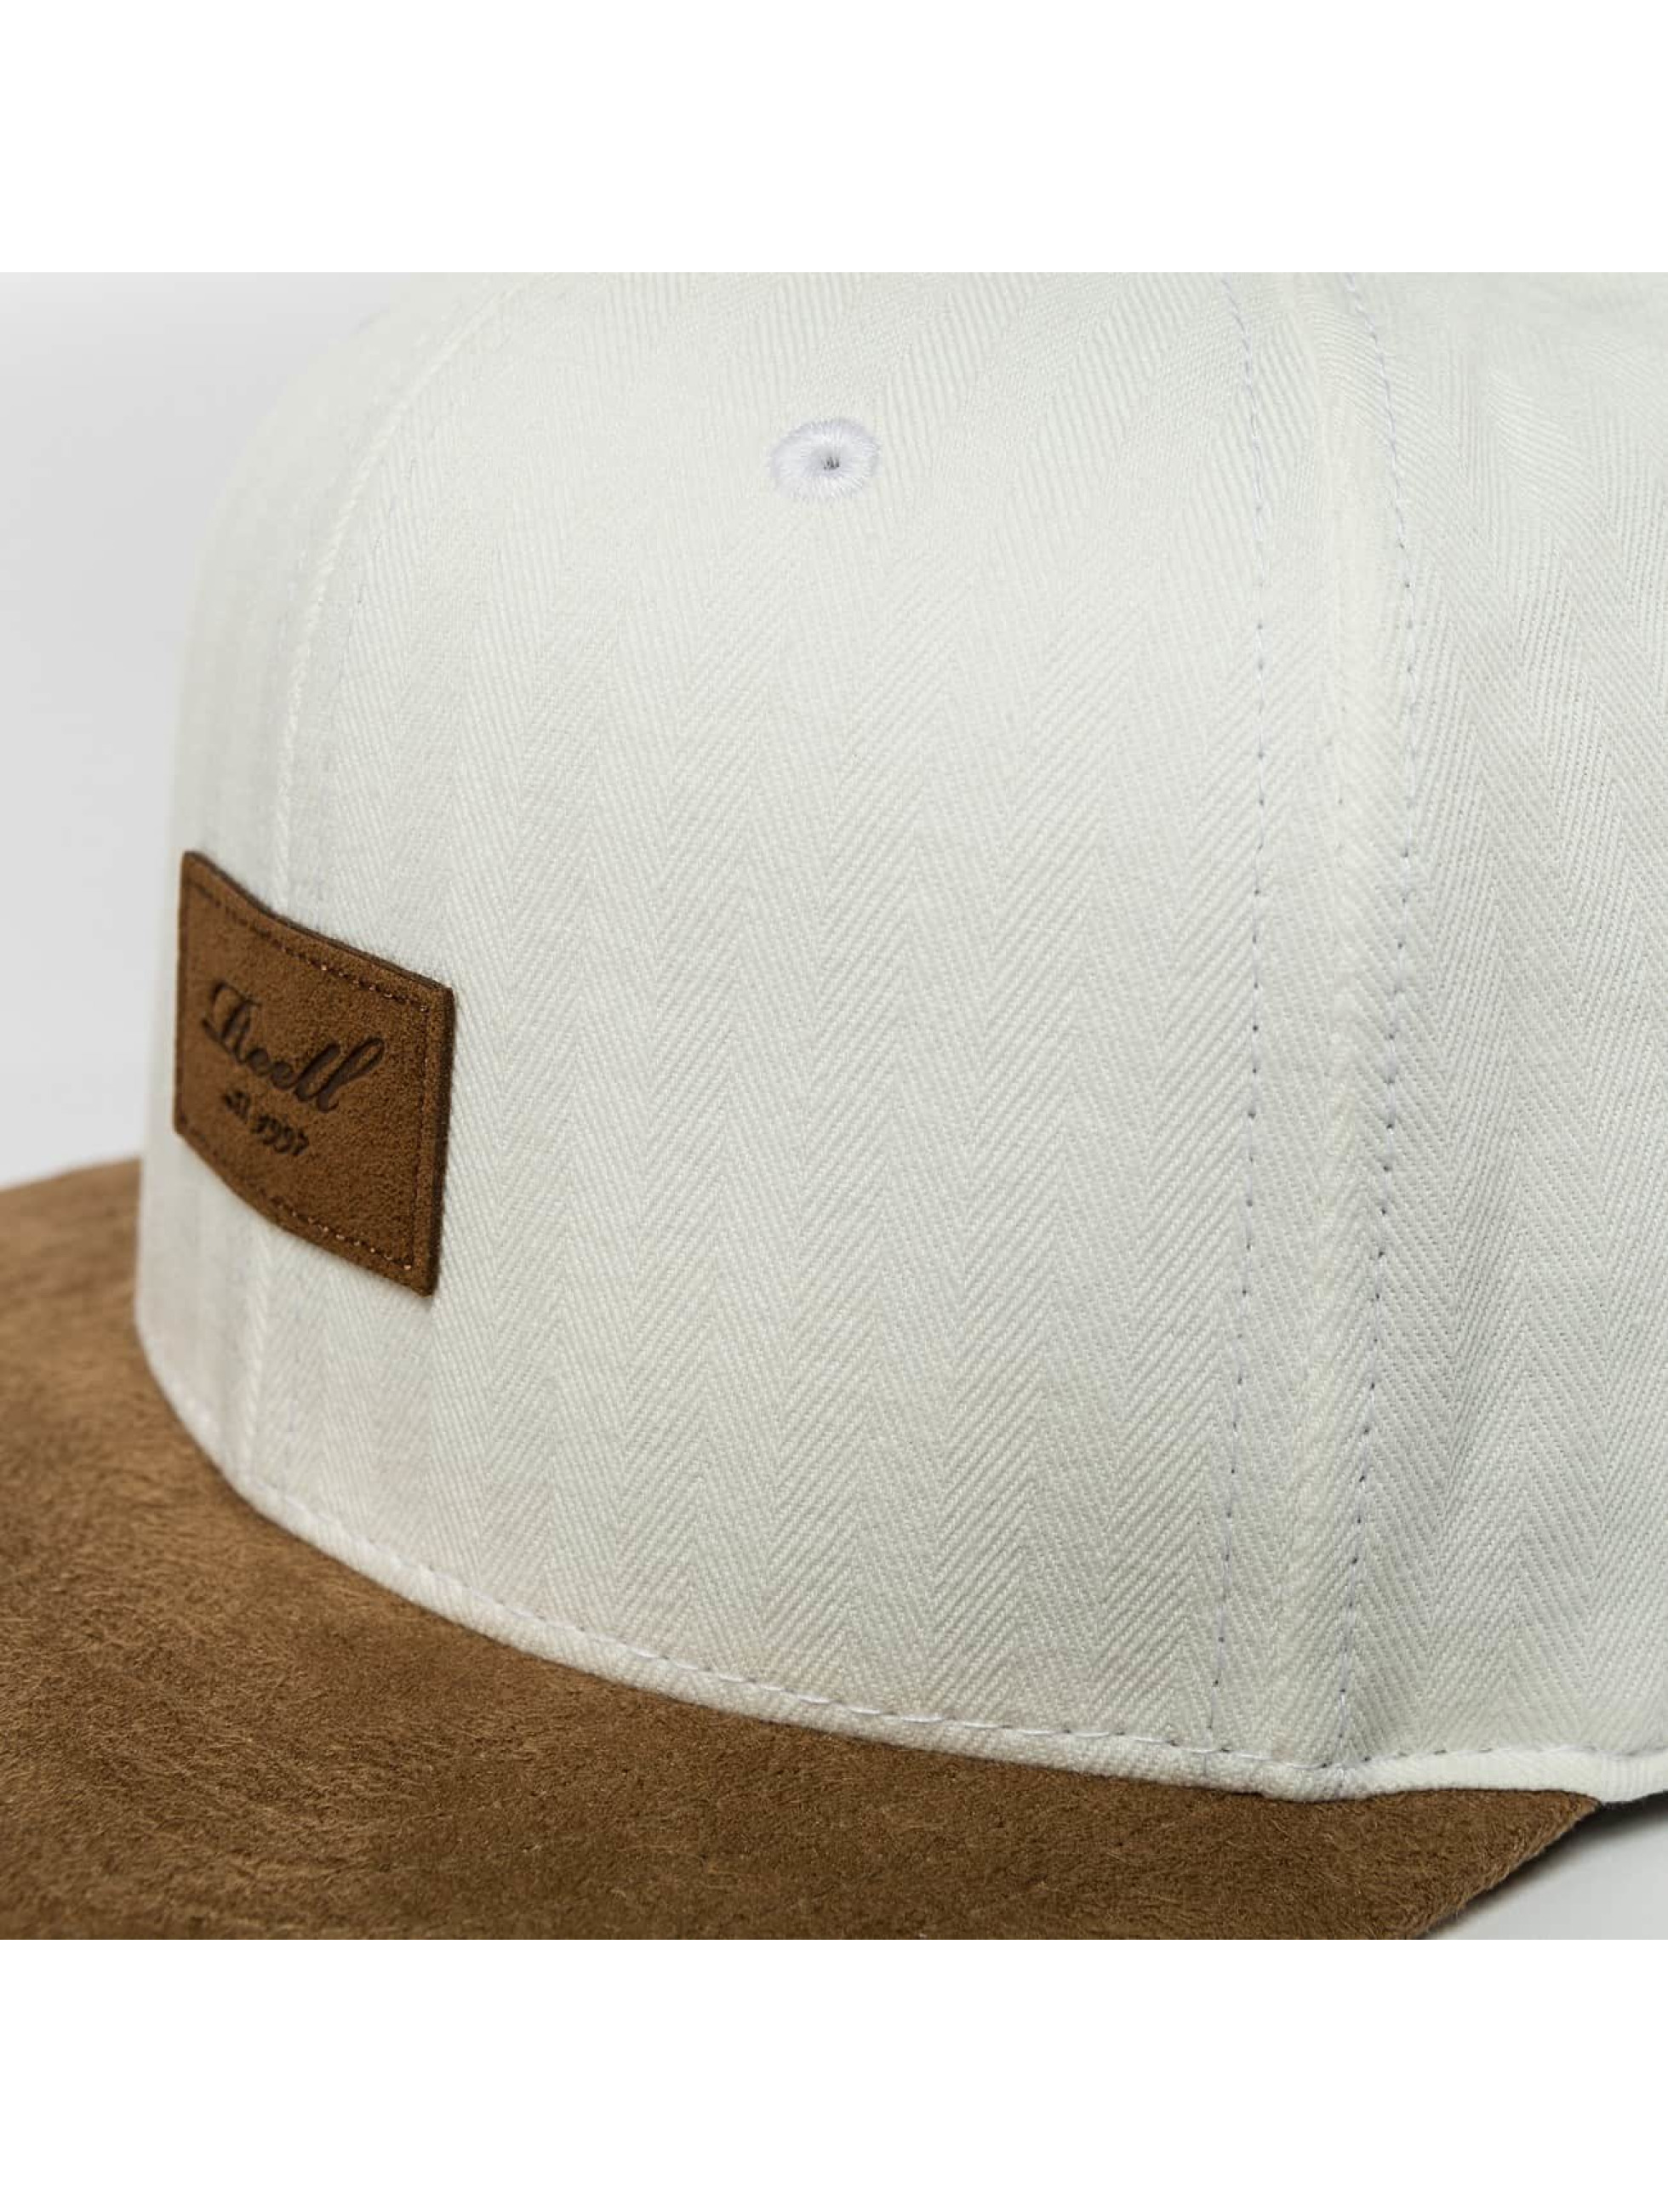 Reell Jeans Snapback Caps Suede bialy